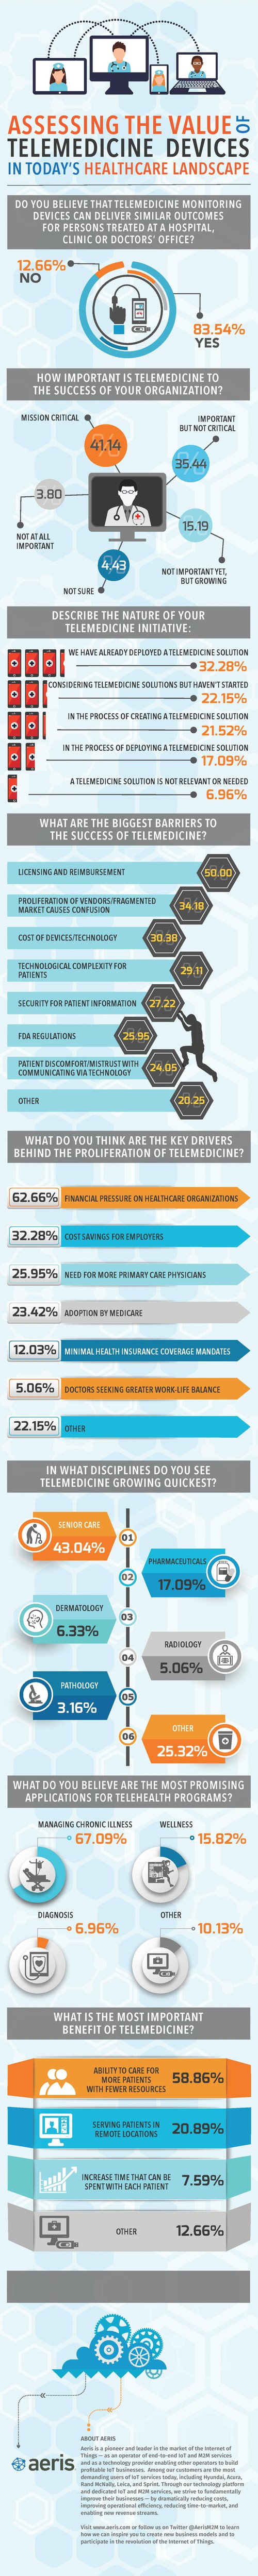 Aeris_Assessing the Value of Telemedicine - Infographic-page-001